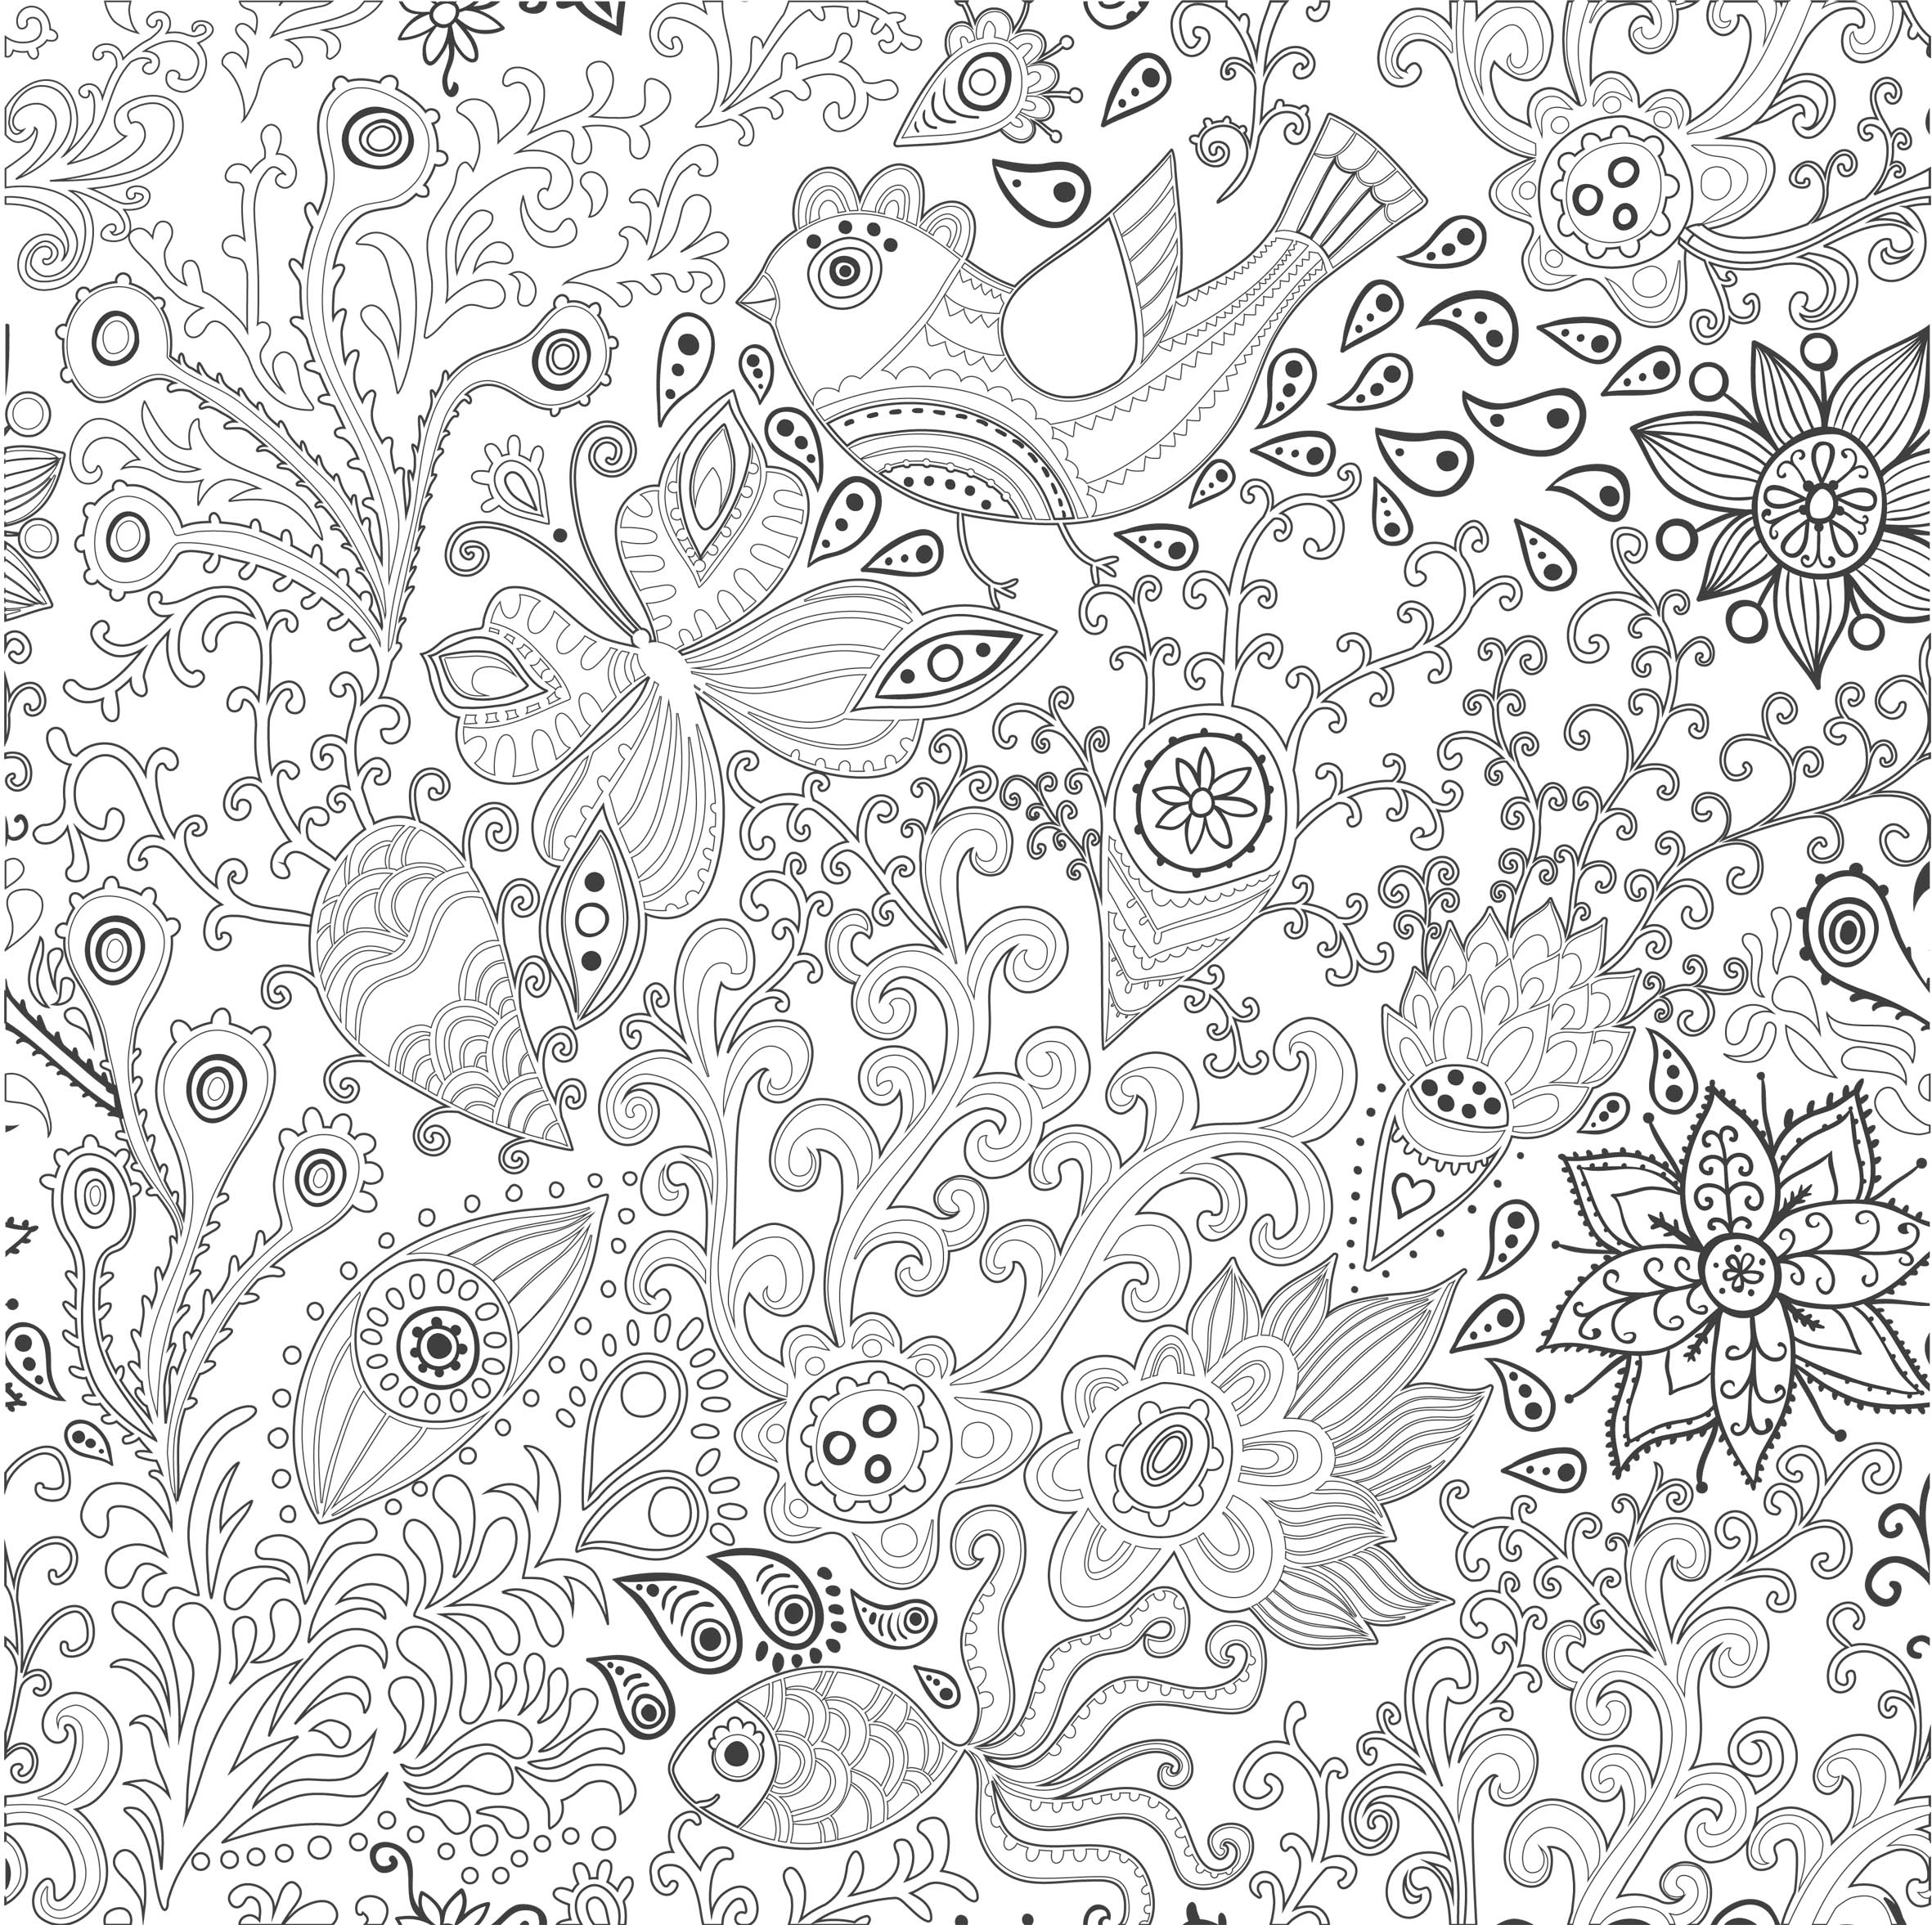 350 coloriage anti stress